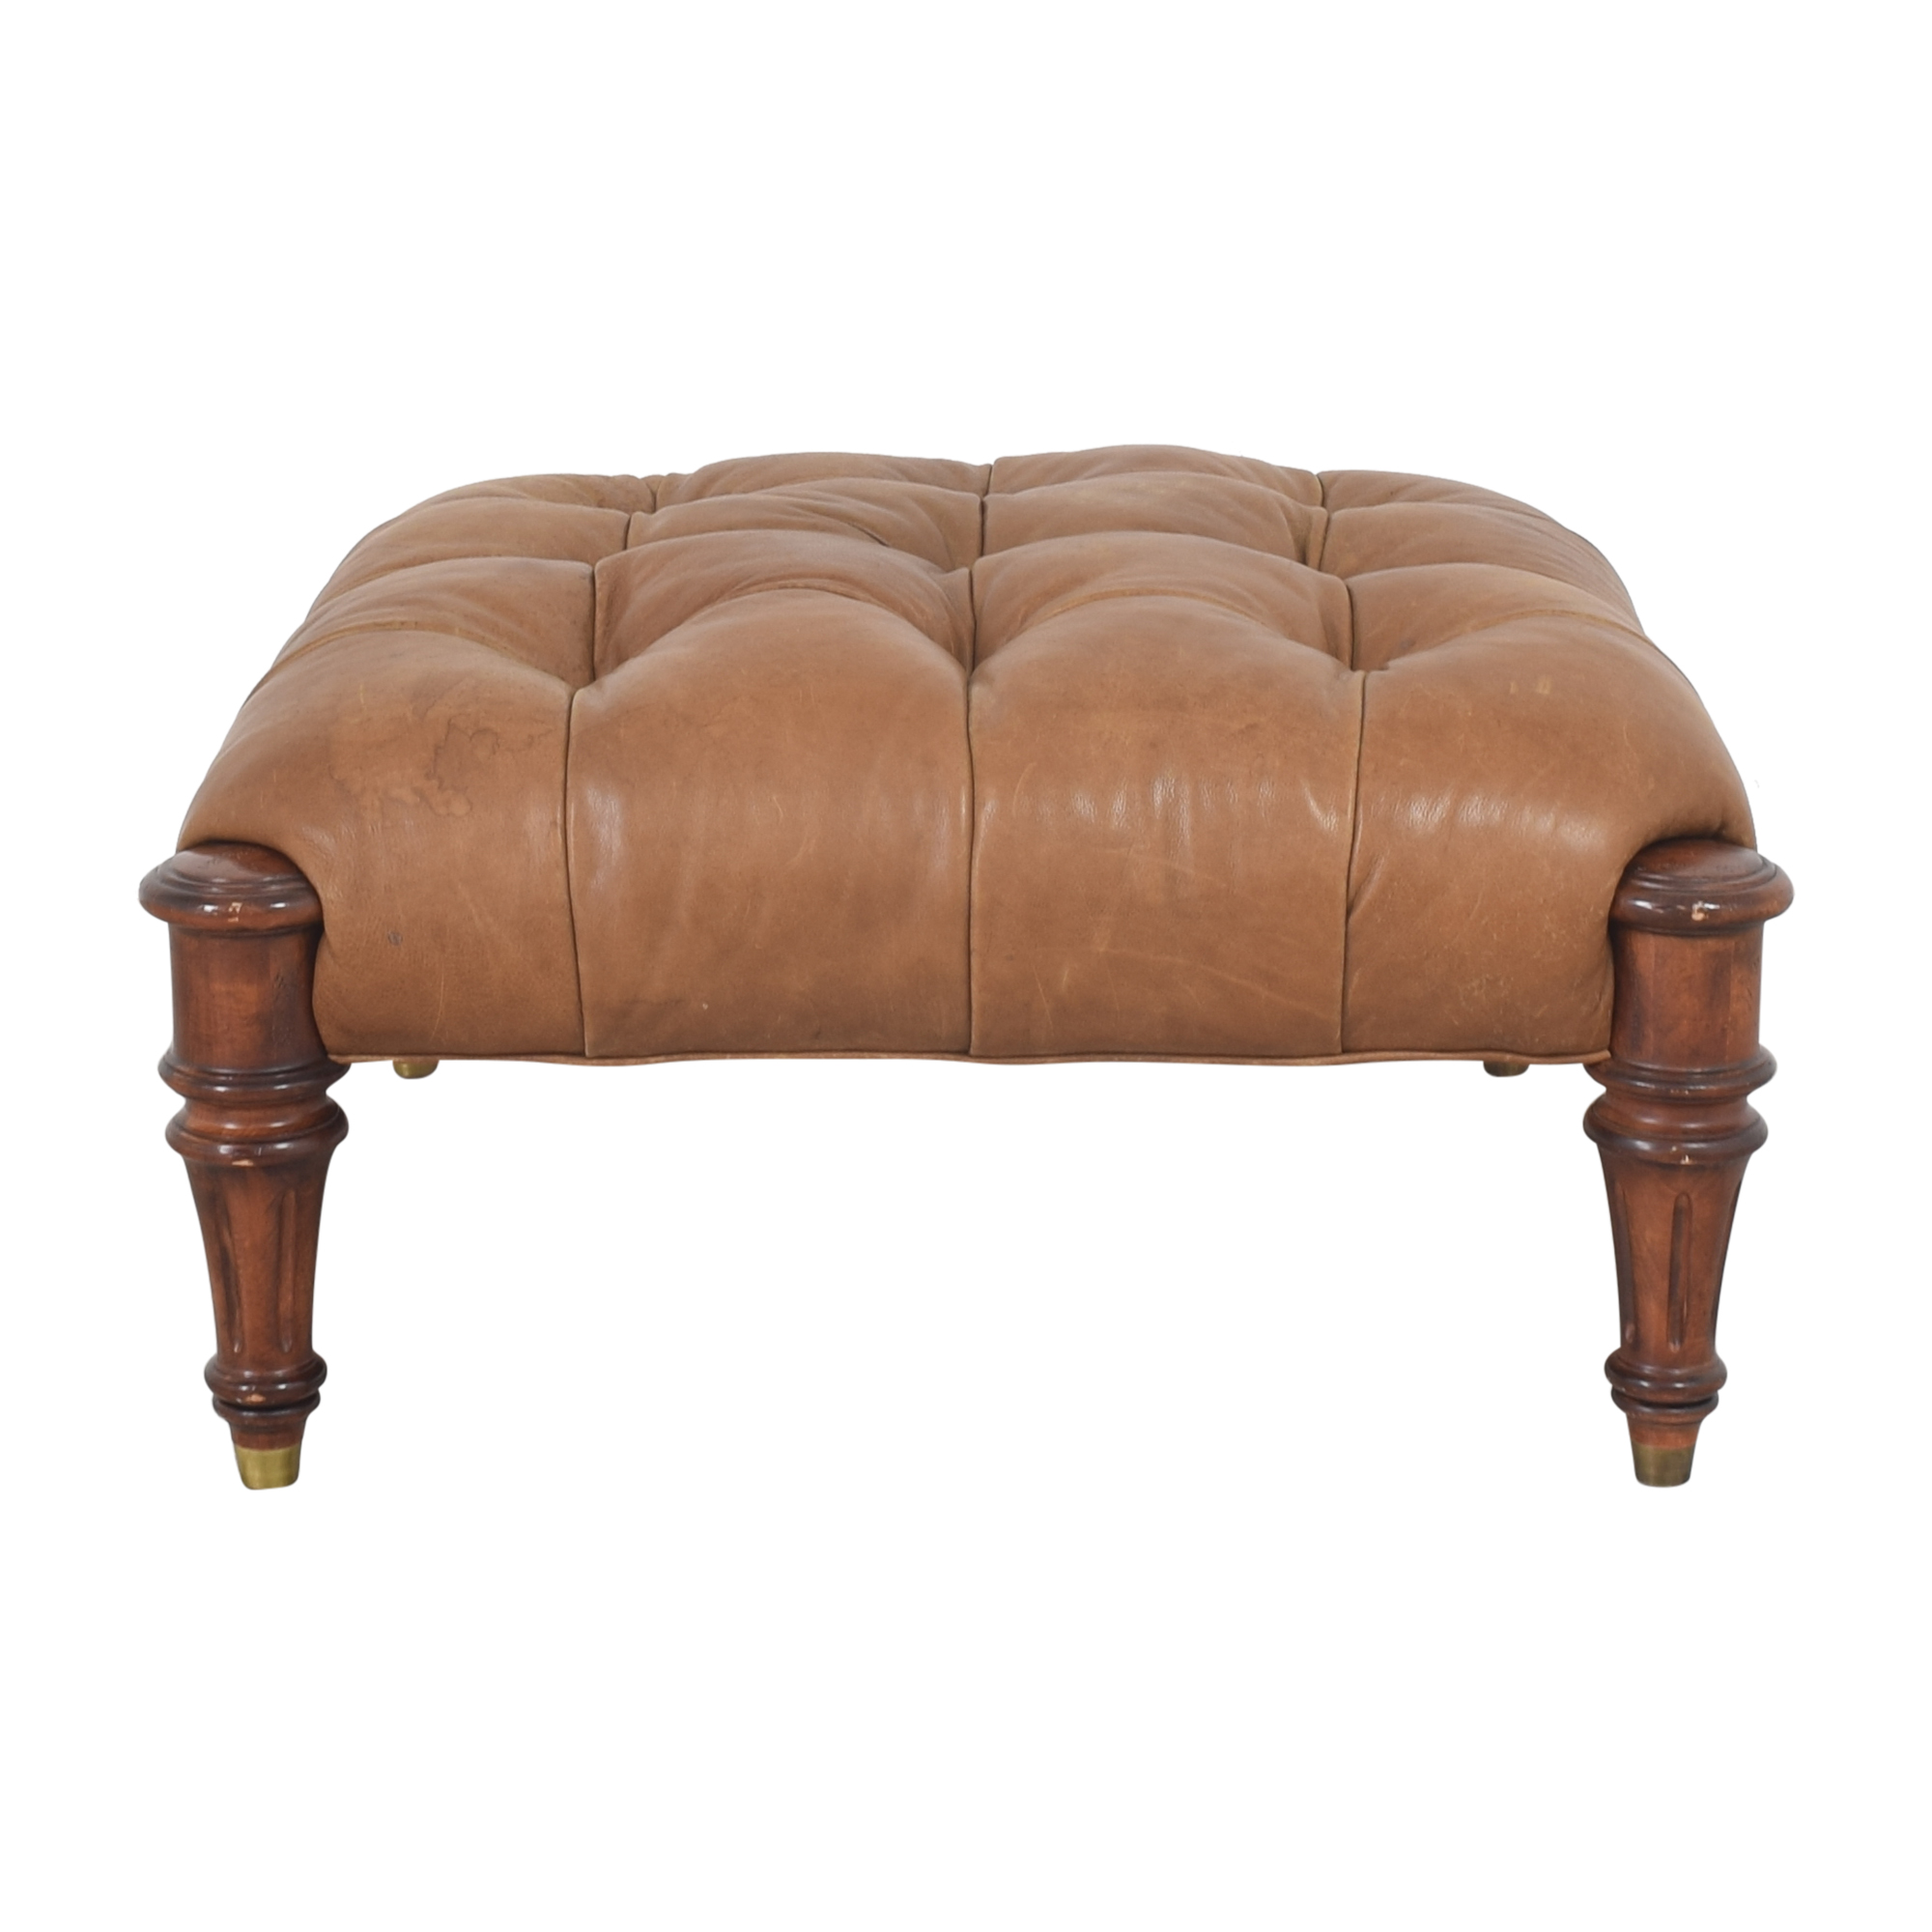 Hancock and Moore Tufted Ottoman sale